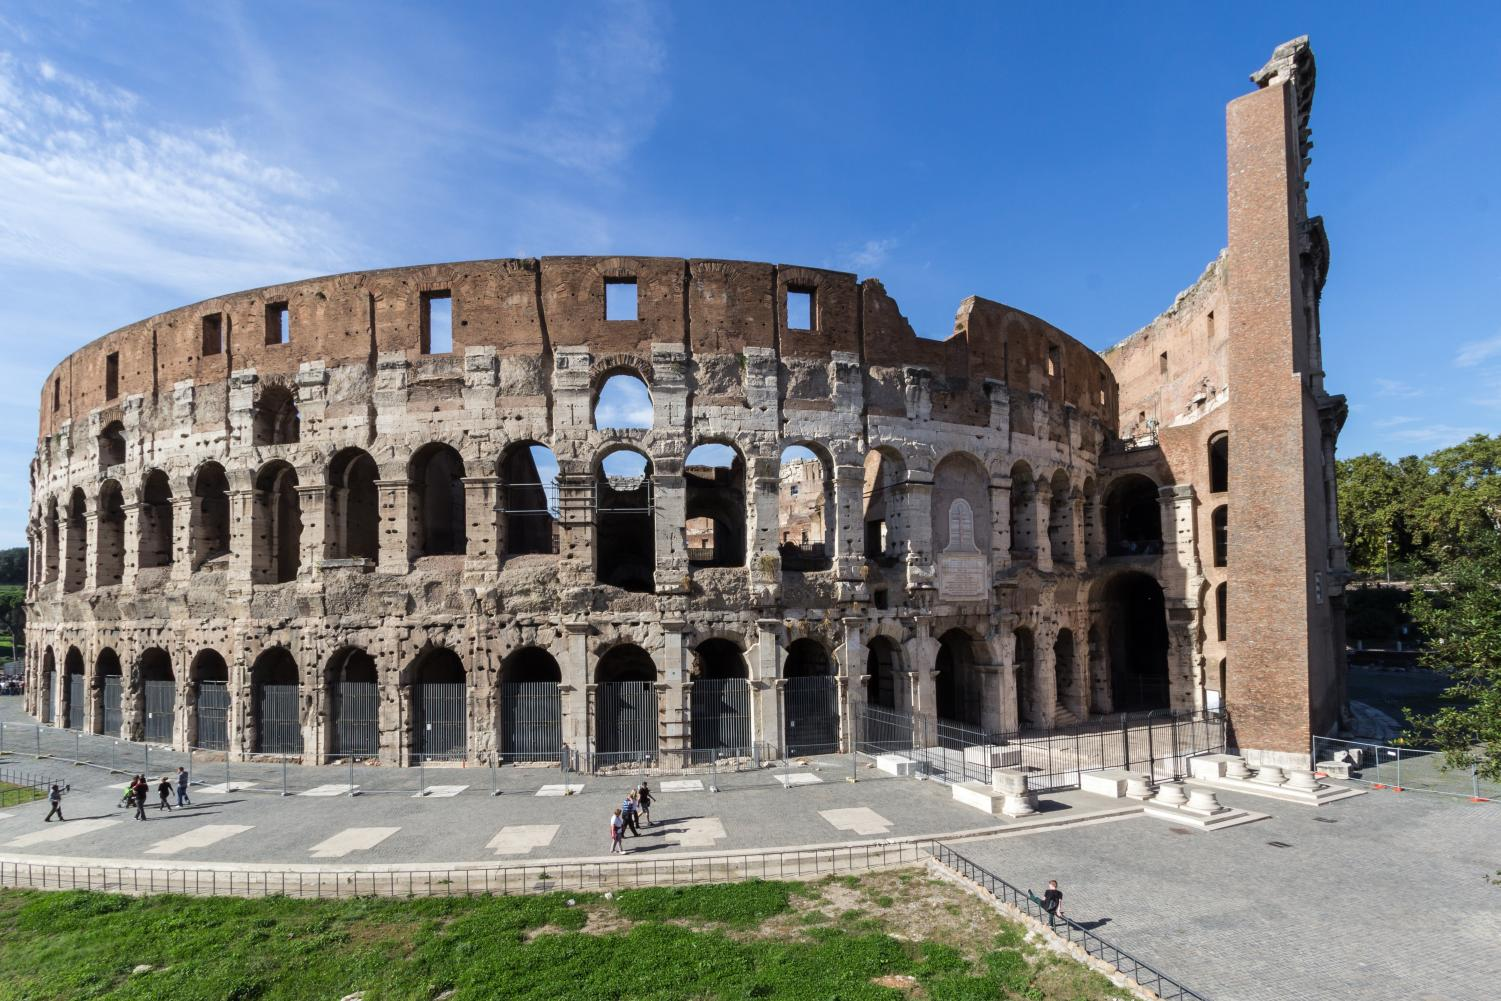 One of the most iconic buildings in Rome, The Roman Colosseum. 